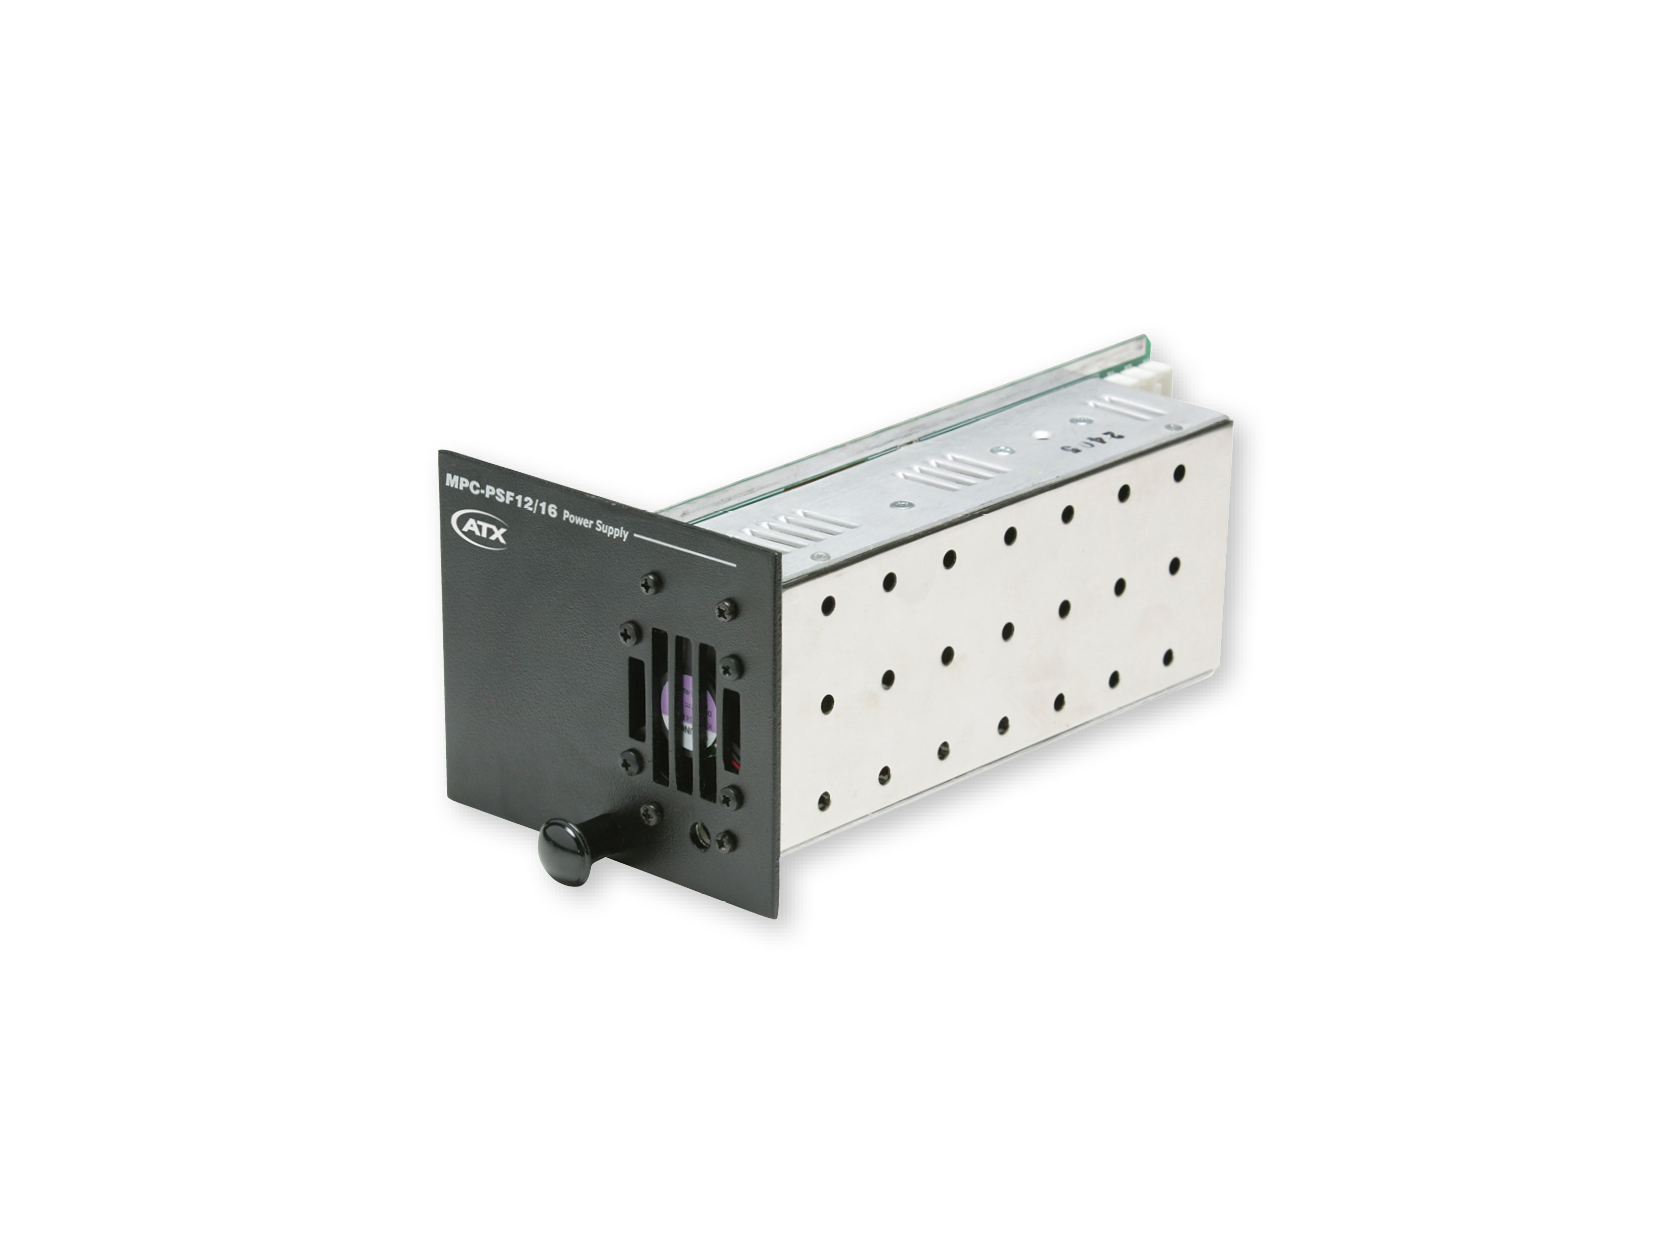 MPC-PSF 12/16: Universal Power Supply Module